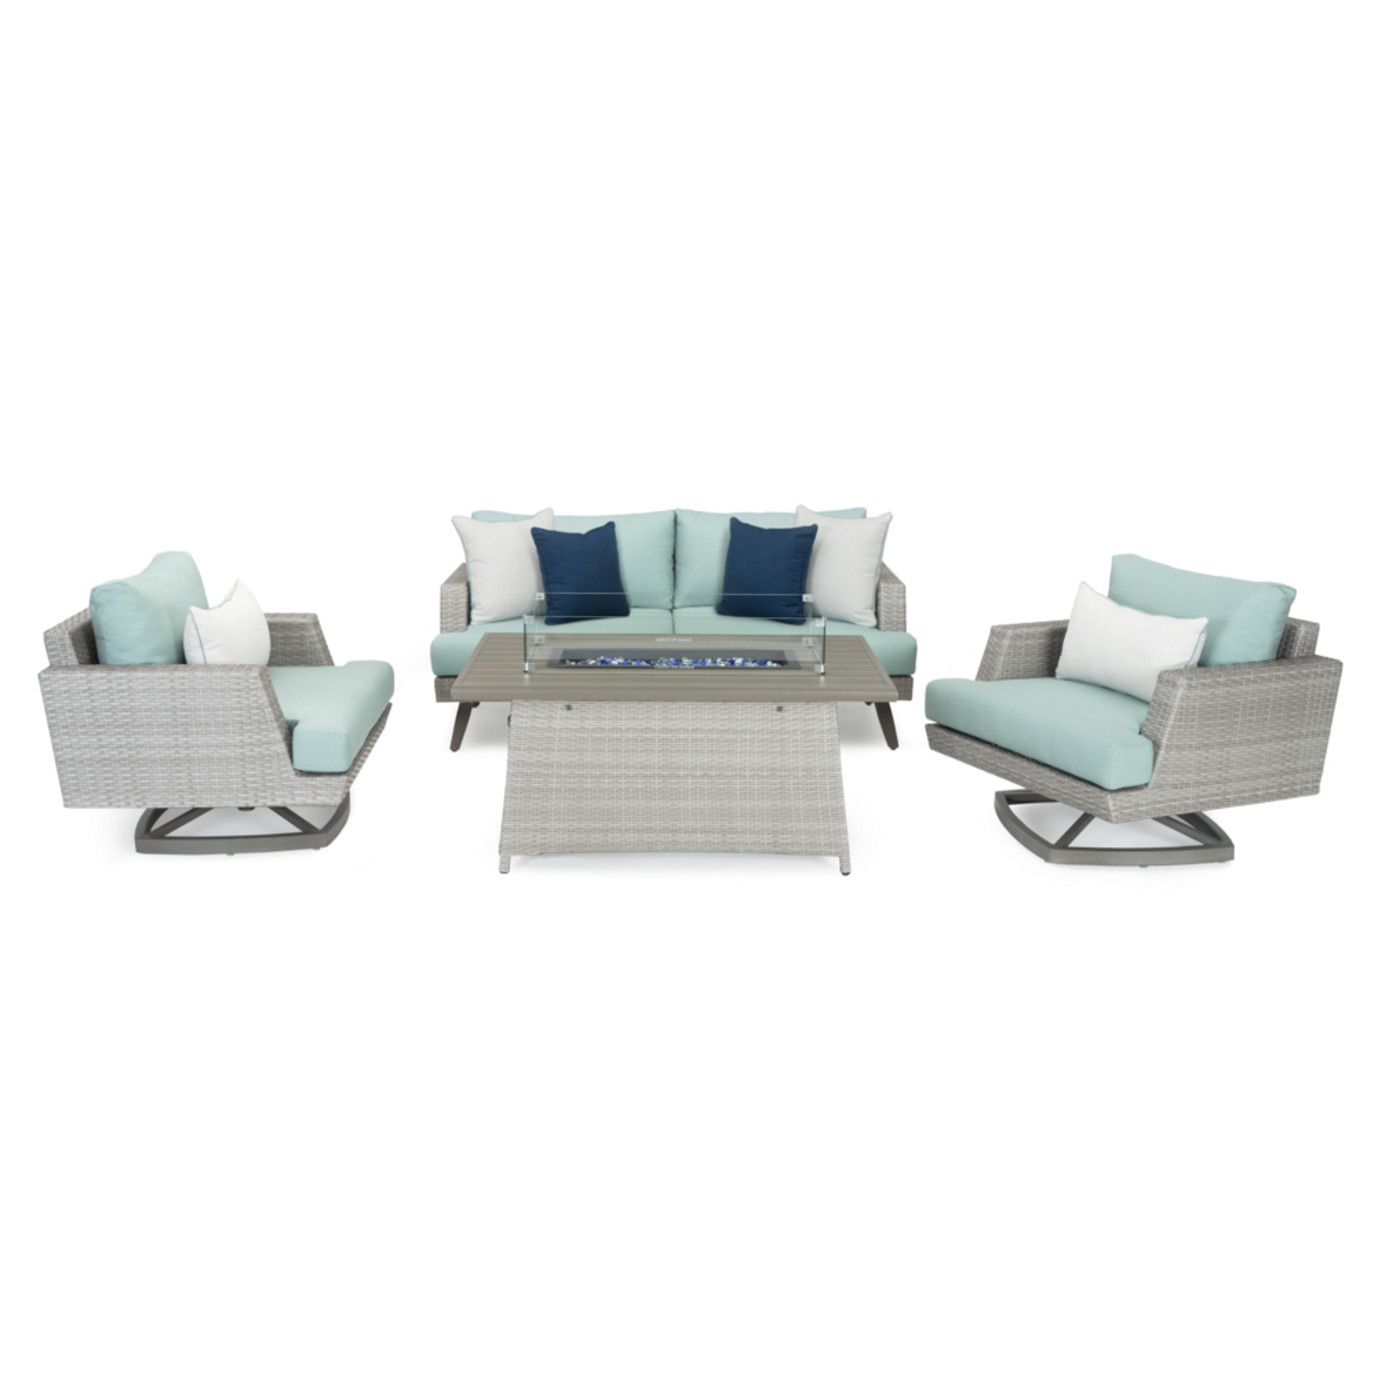 Portofino® Casual 4 Piece Motion Fire Seating Set - Spa Blue